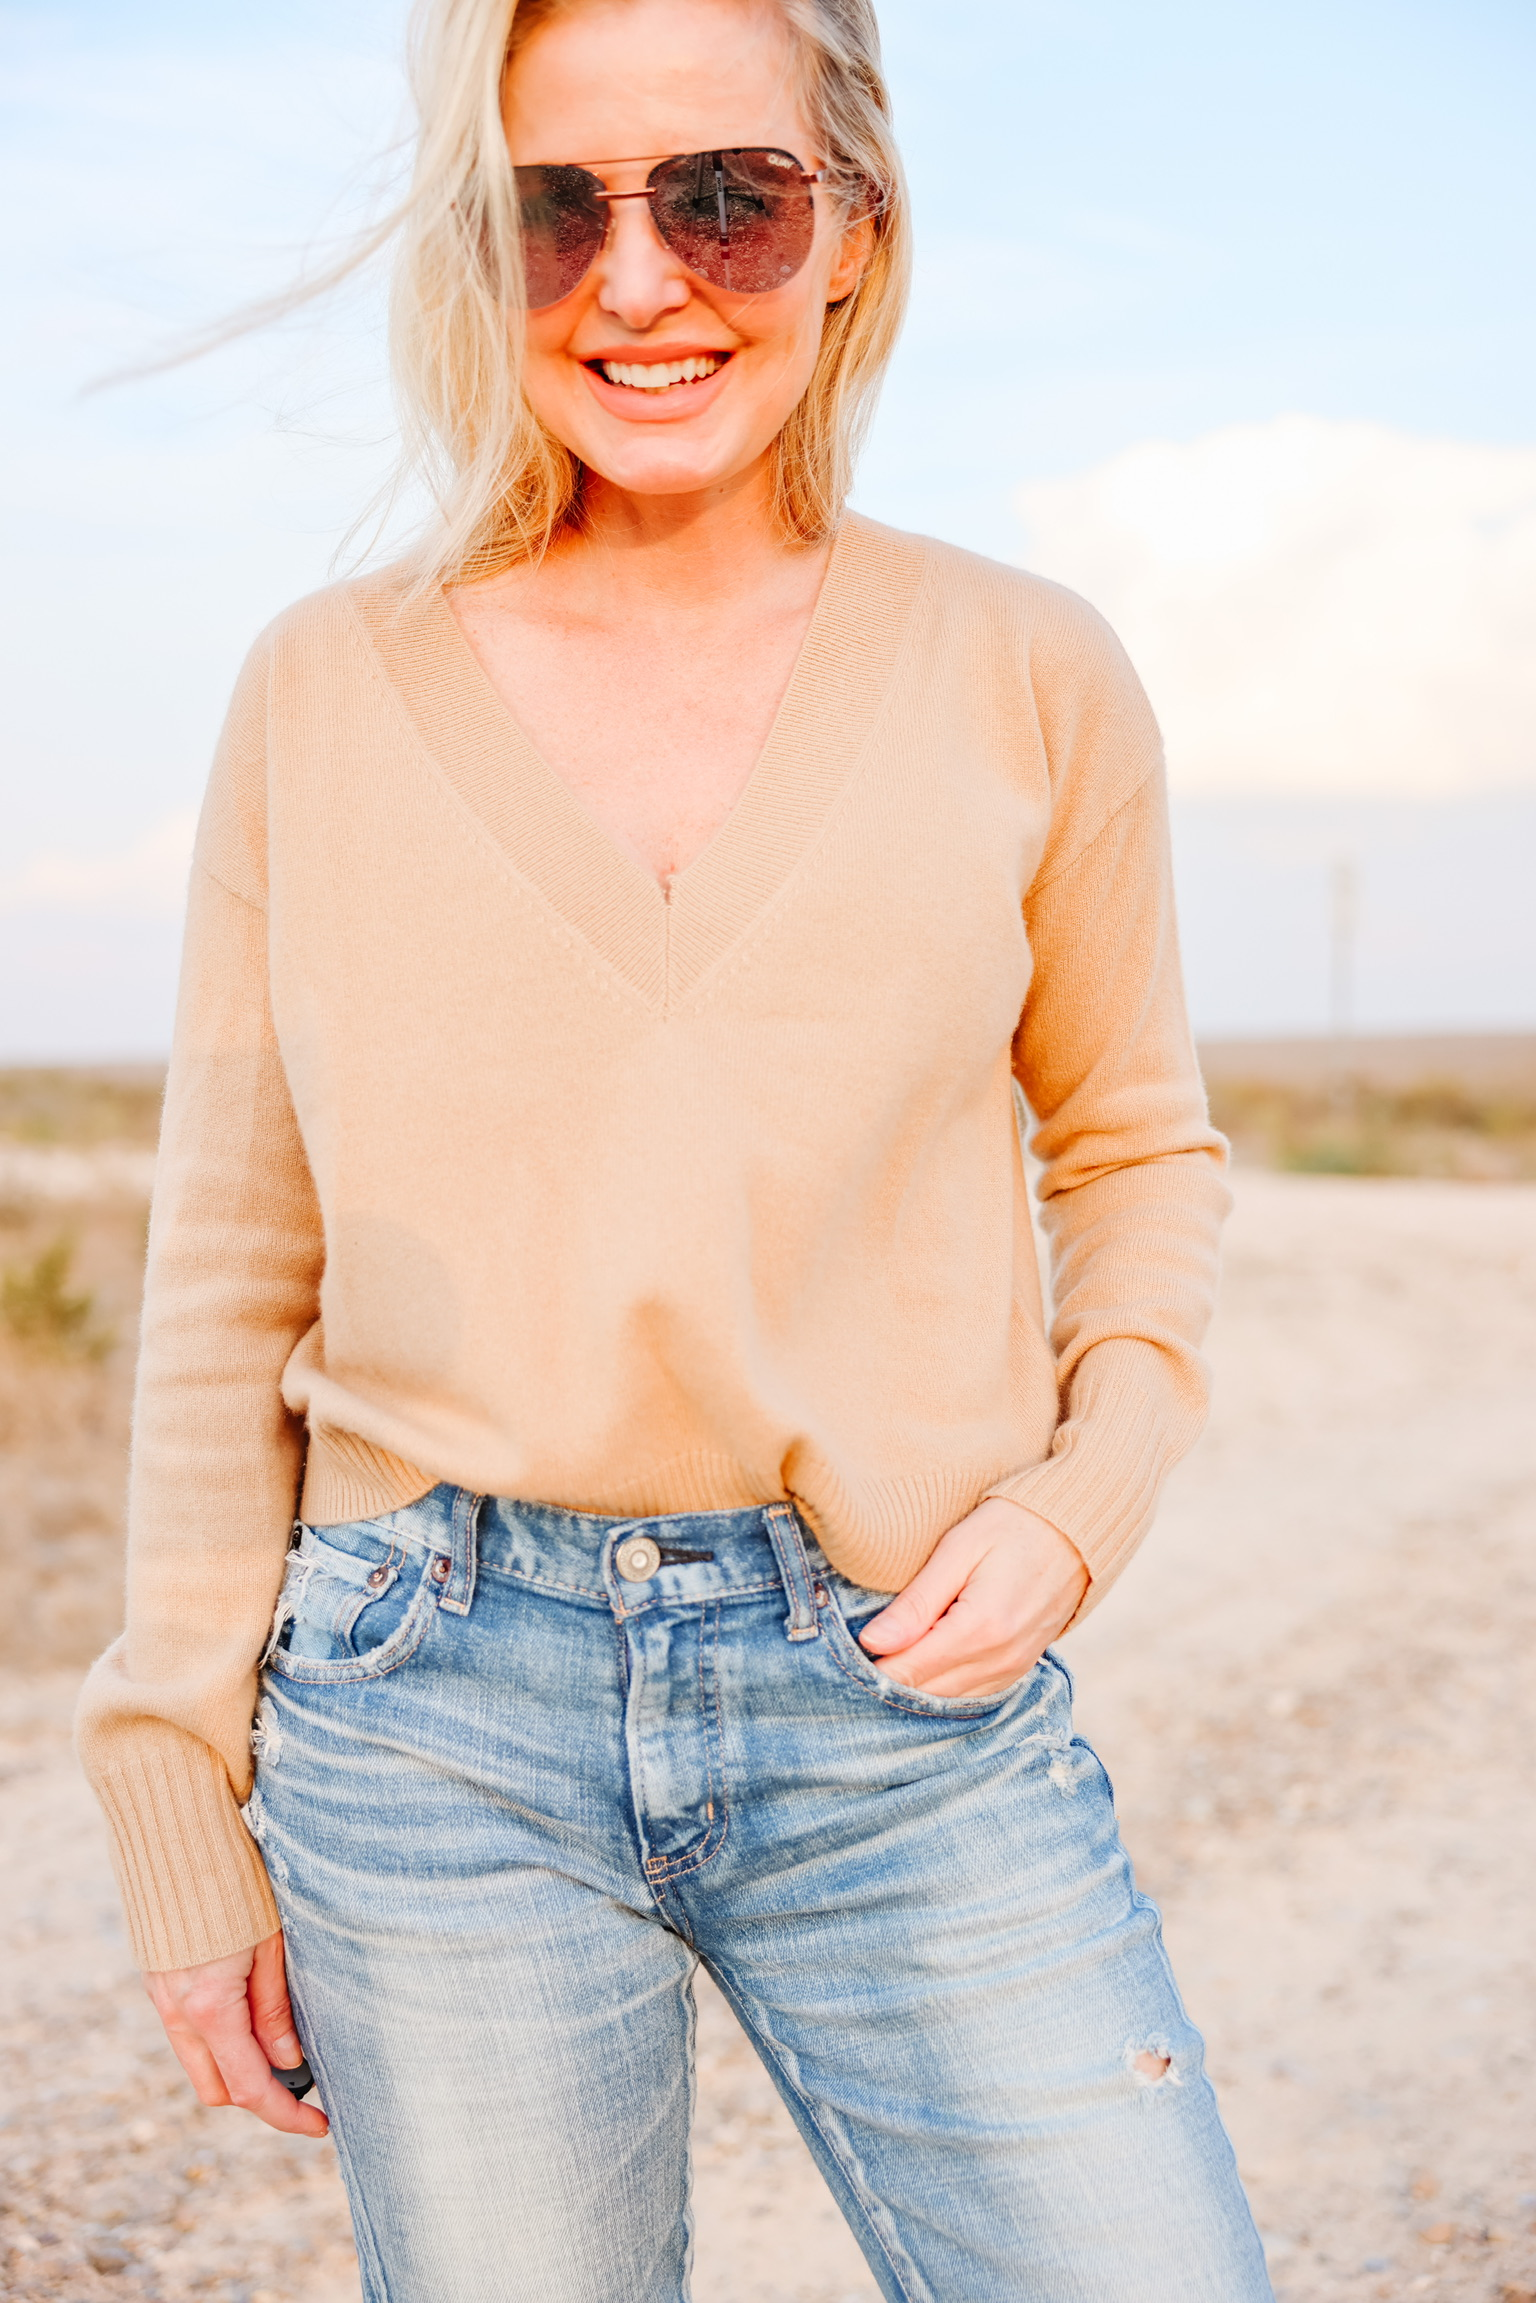 elevated basics, Erin Busbee of Busbee wearing a camel cashmere v-neck sweater from INtermix with distressed skinny jeans by Moussy Vintage and white golden goose sneakers in south Texas